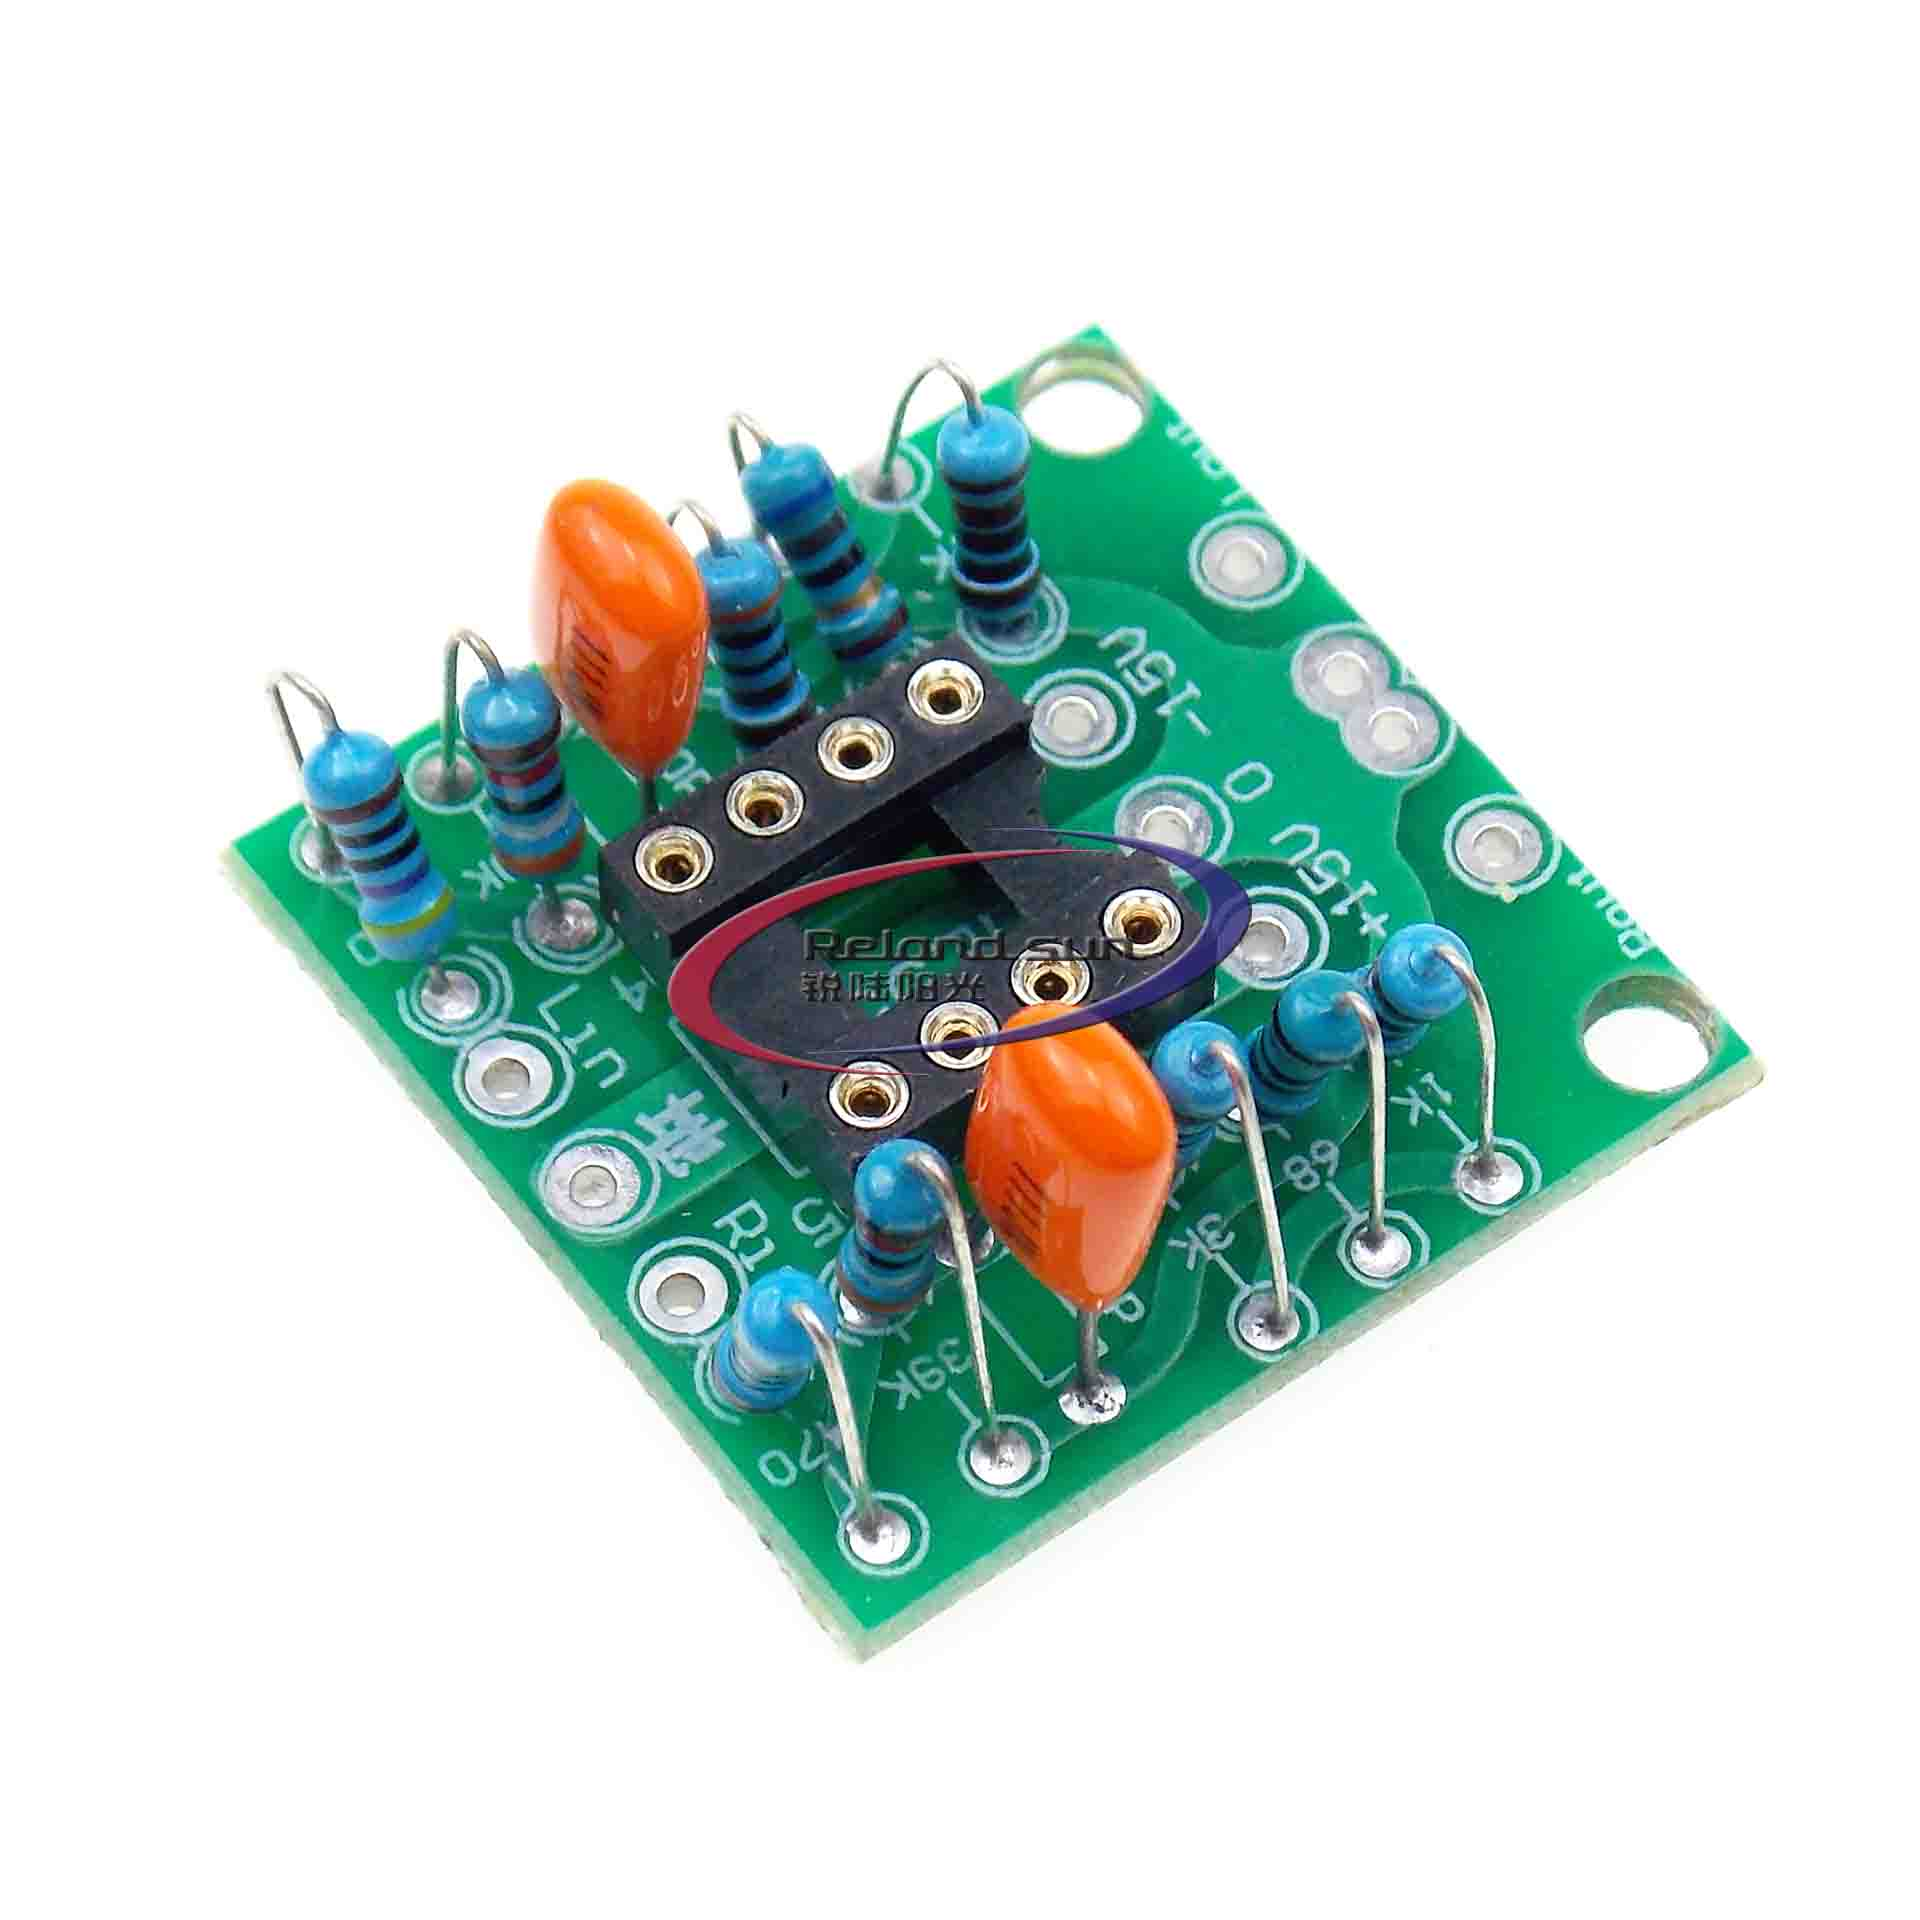 Dual OP Amp Board Preamp DC Amplification <font><b>Amplifier</b></font> PCB Board For NE5532/<font><b>OPA2134</b></font>/OPA2604/AD826 image